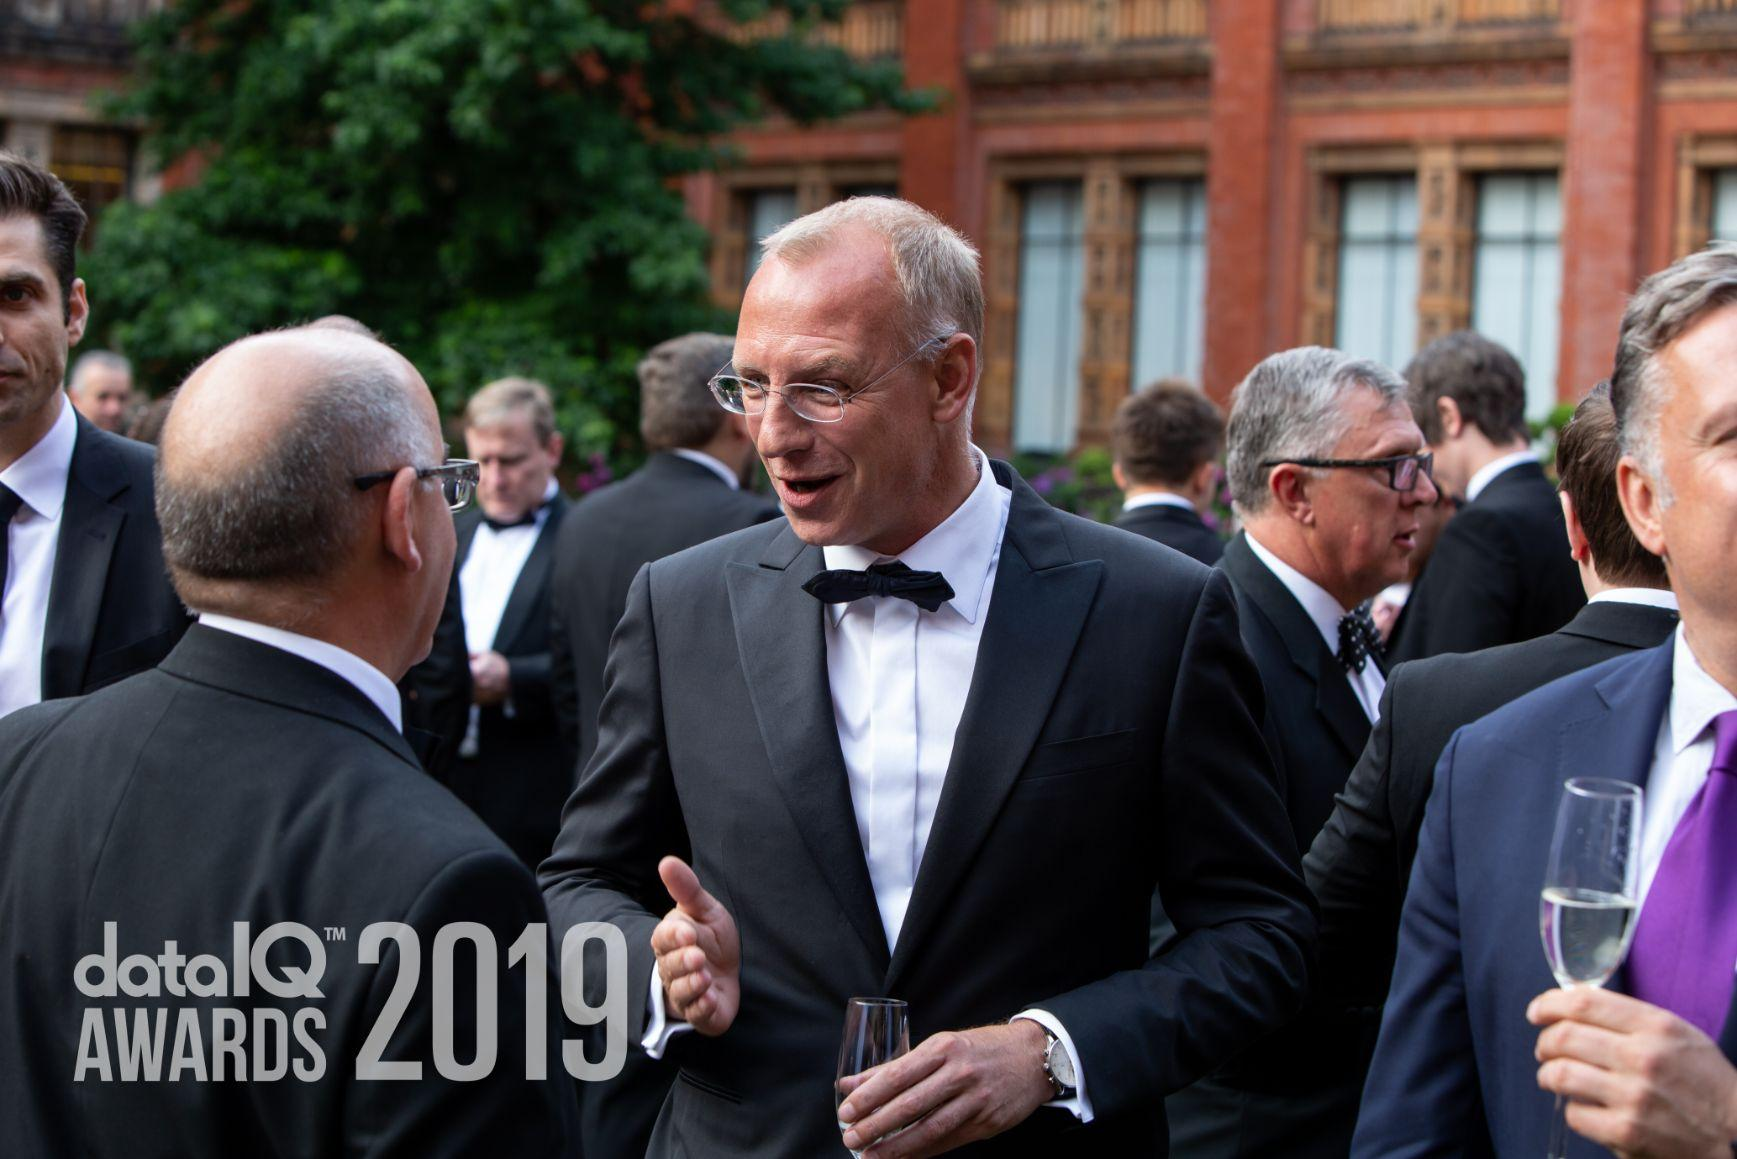 Awards 2019 Image 136